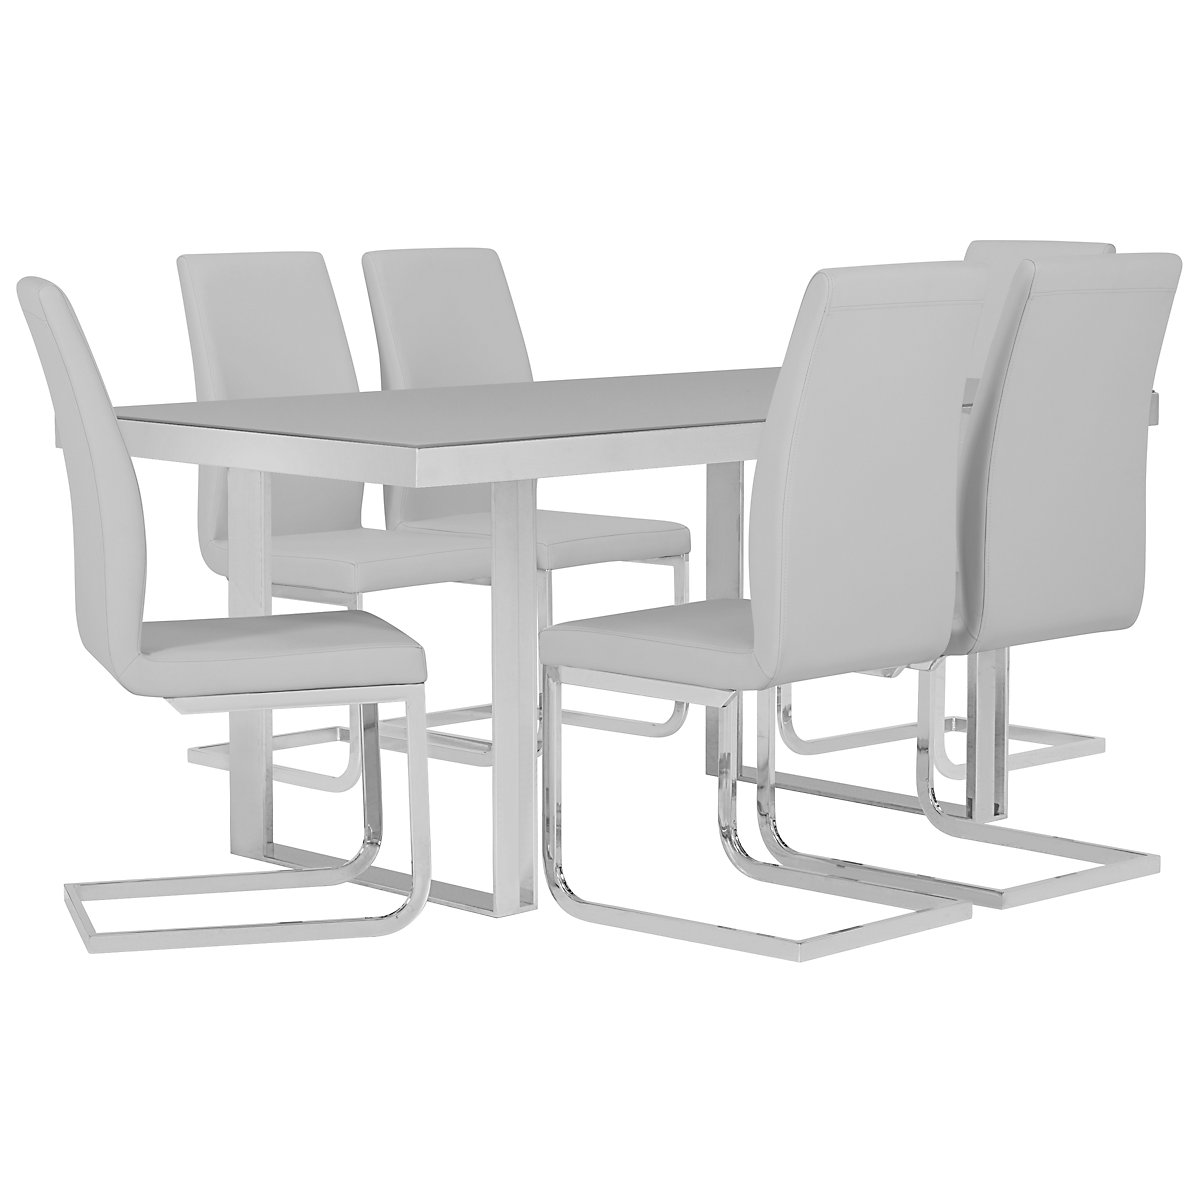 Harley Gray Glass Table & 4 Upholstered Chairs